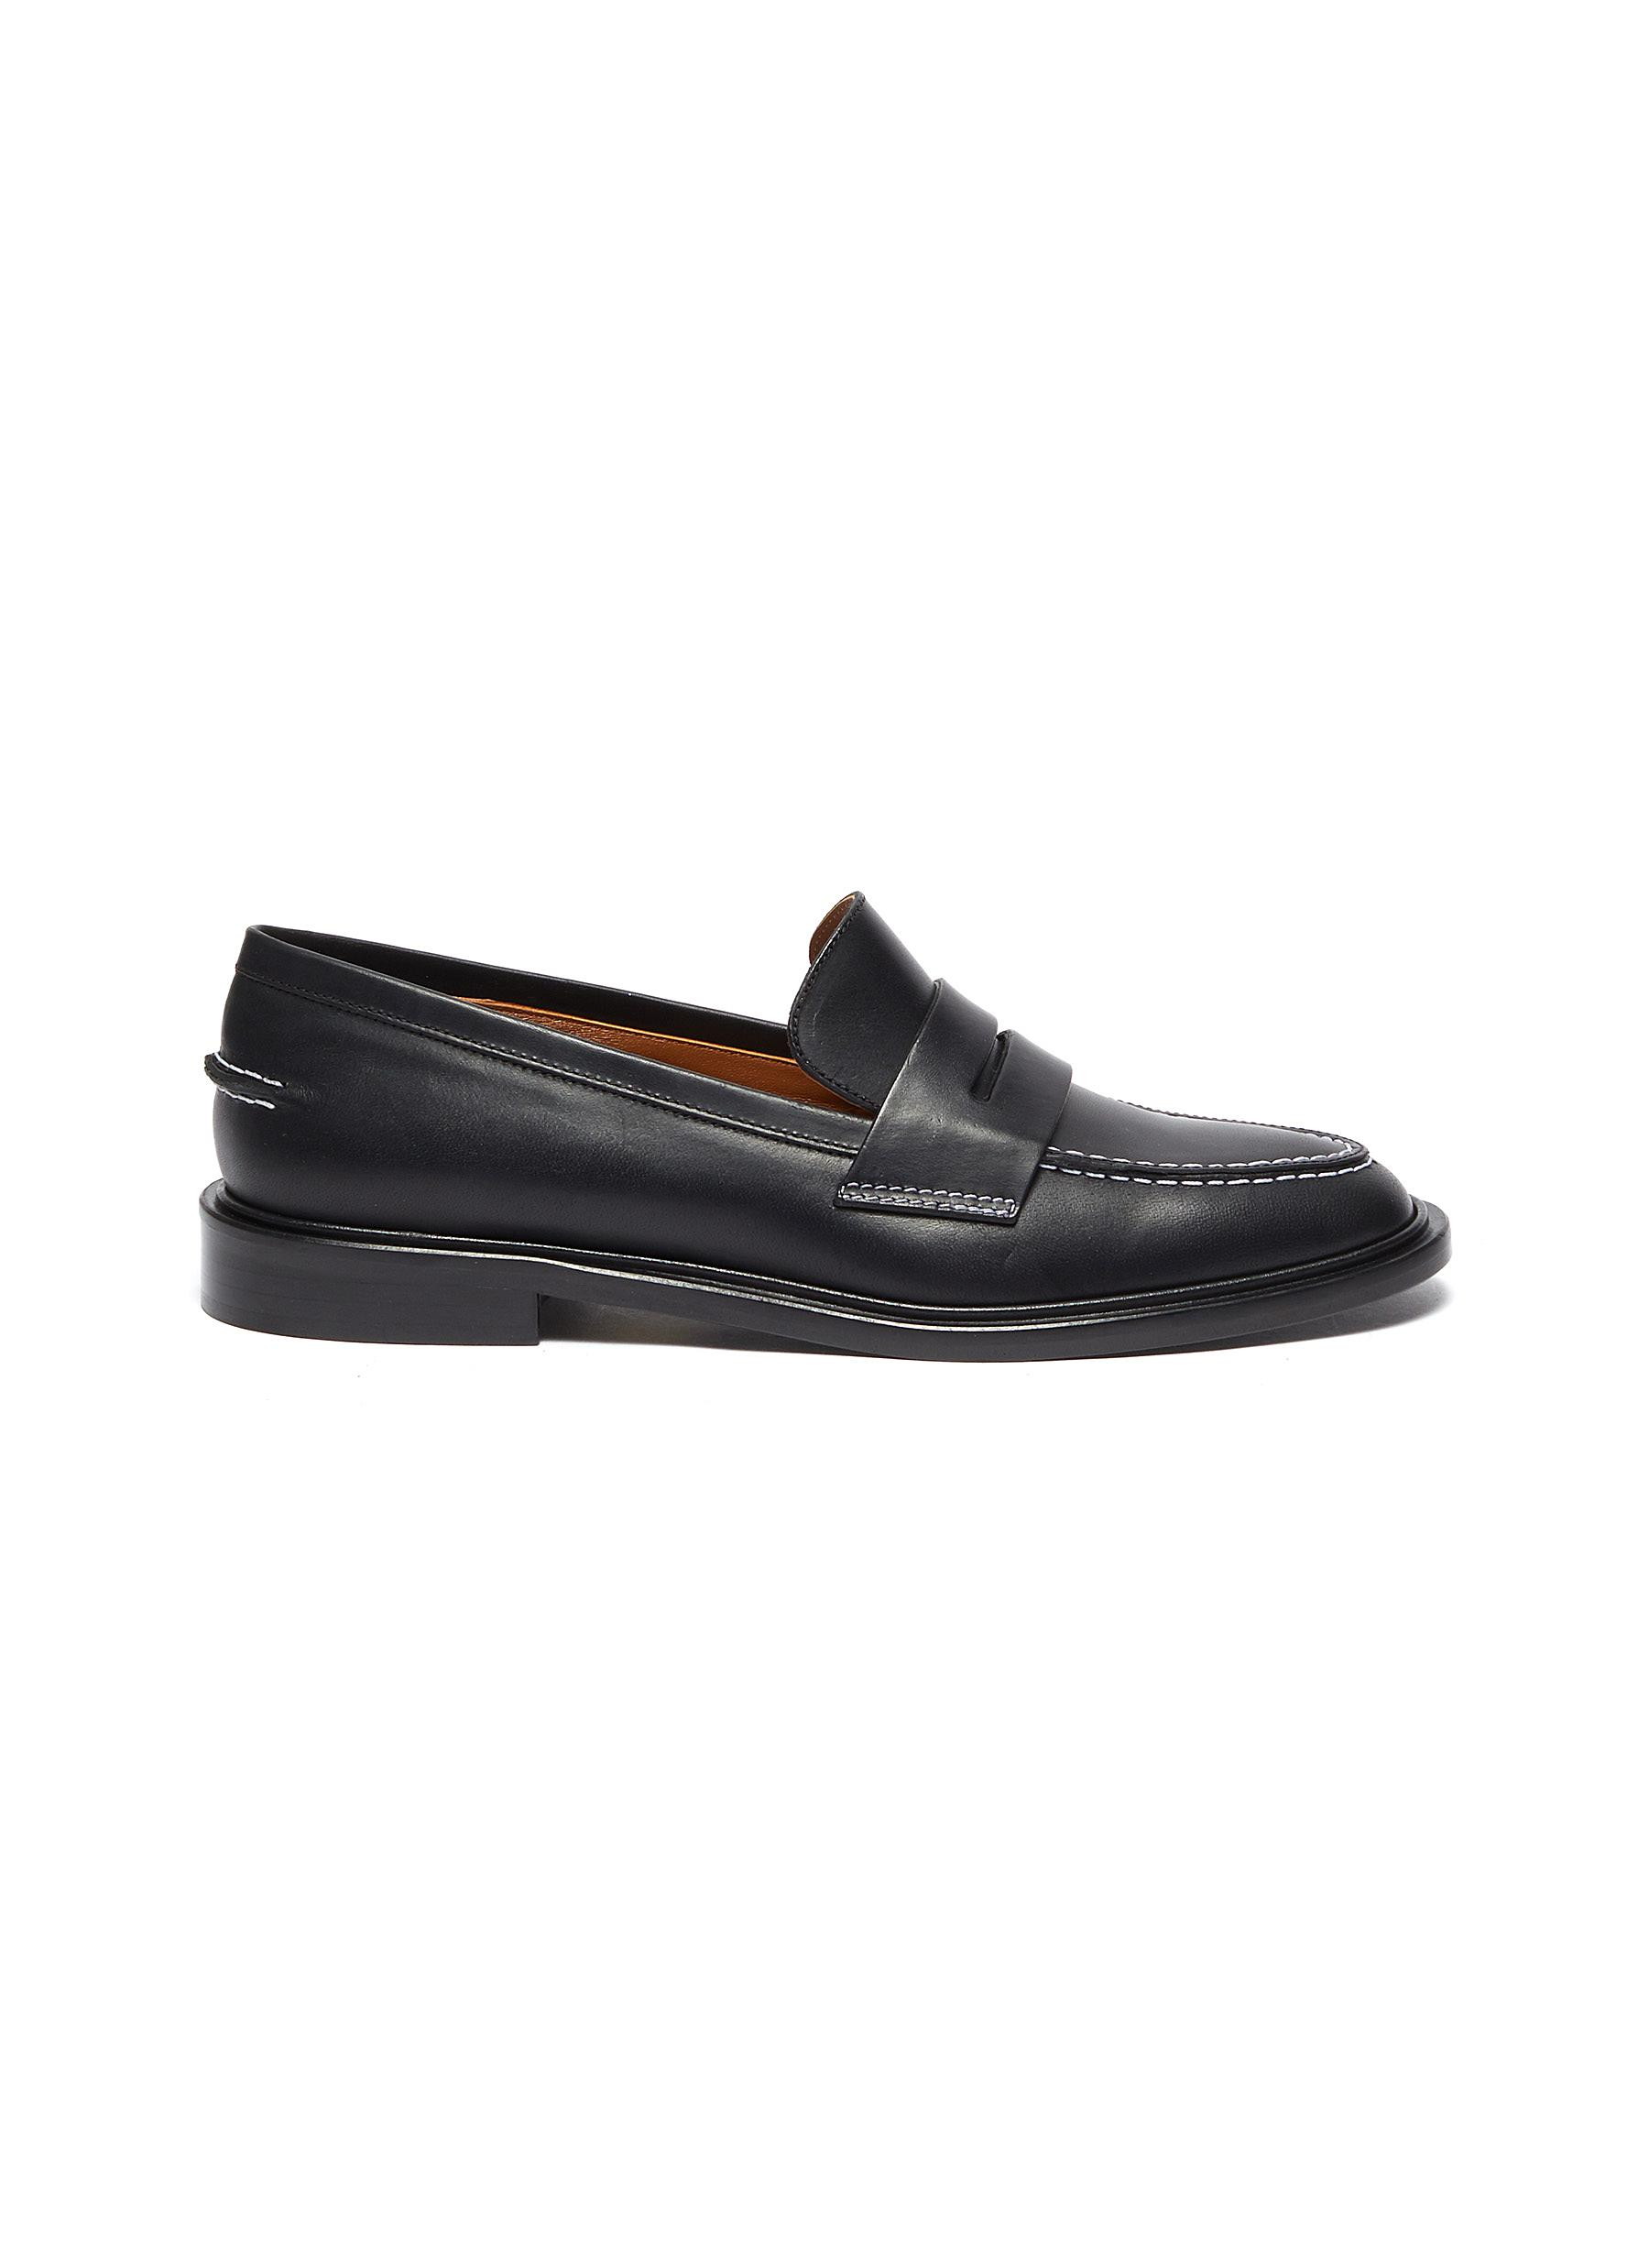 Atp Atelier 'MONTI' CONTRAST STITCHING LEATHER LOAFERS